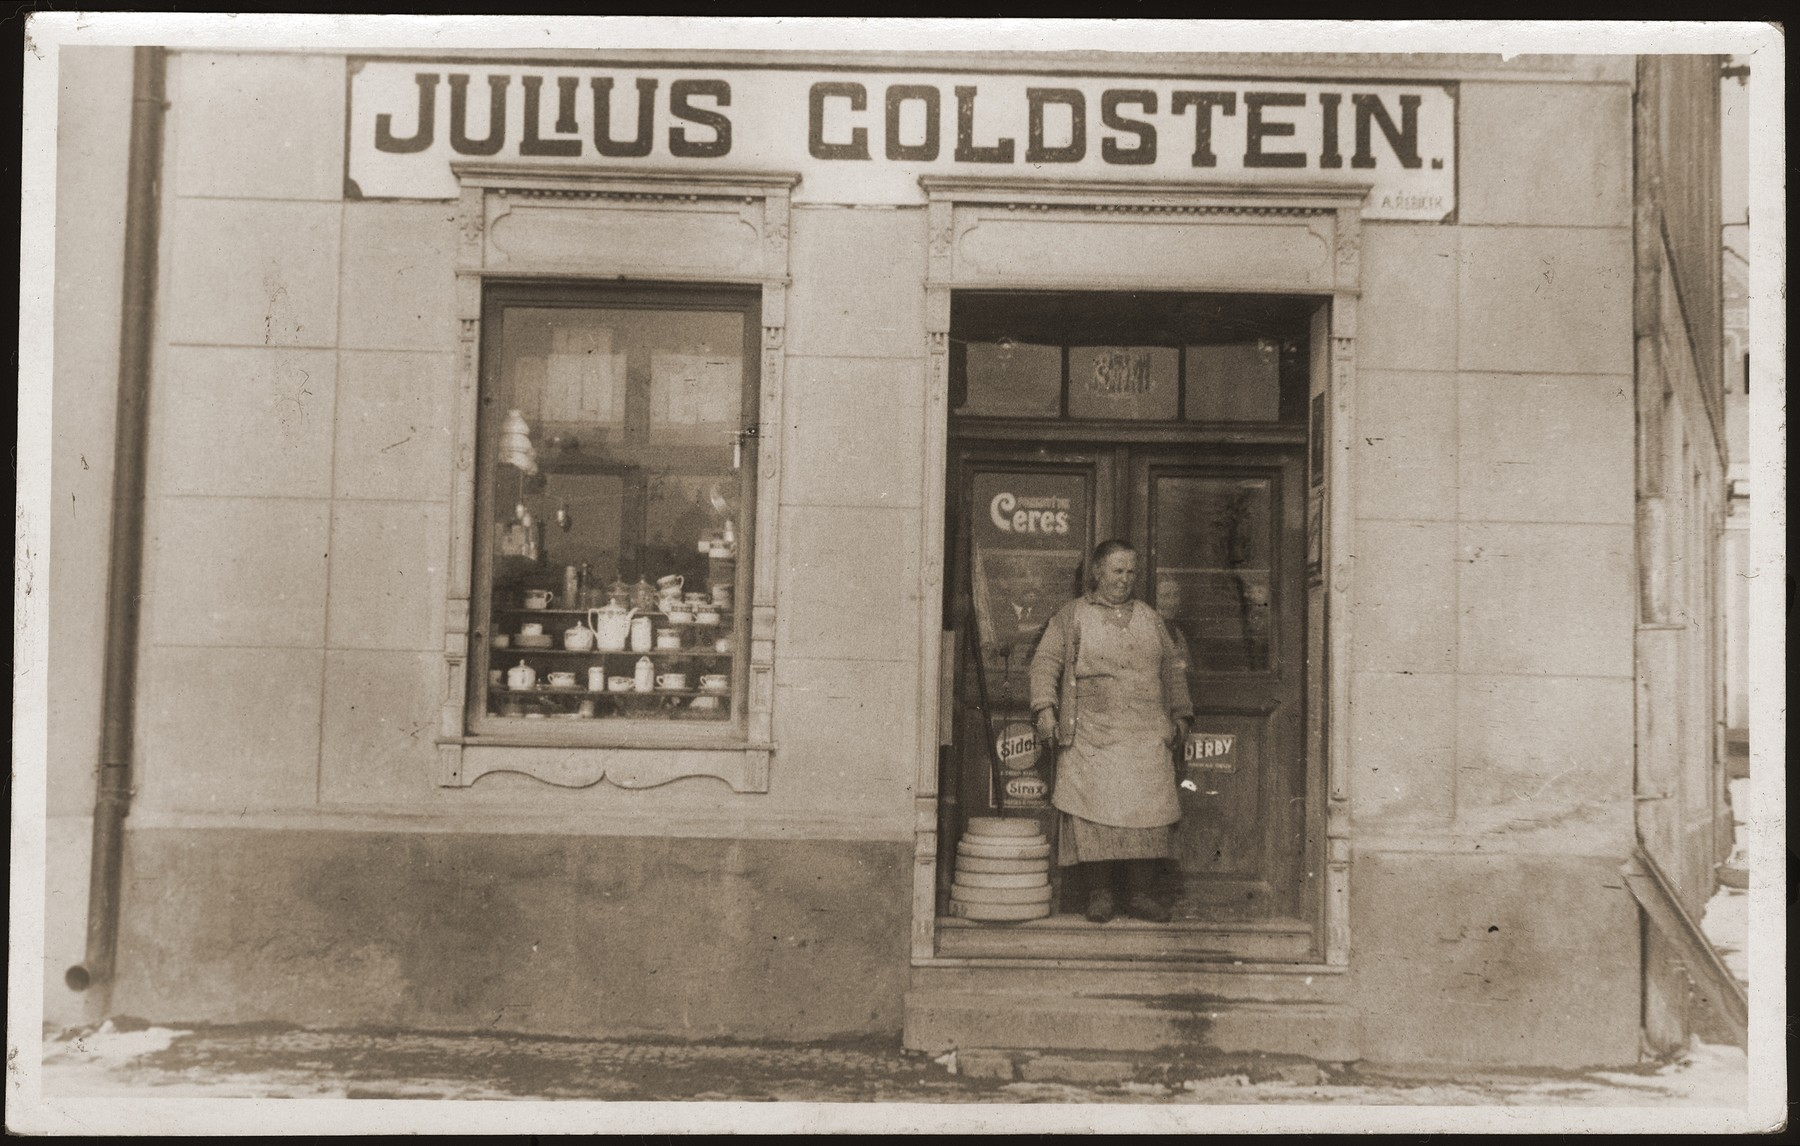 Fanny Goldstein stands at the entrance to the family's general store in Sevetin, Czechoslovakia.    Julius Goldstein and one of his eight children are visible in the windows of the store.